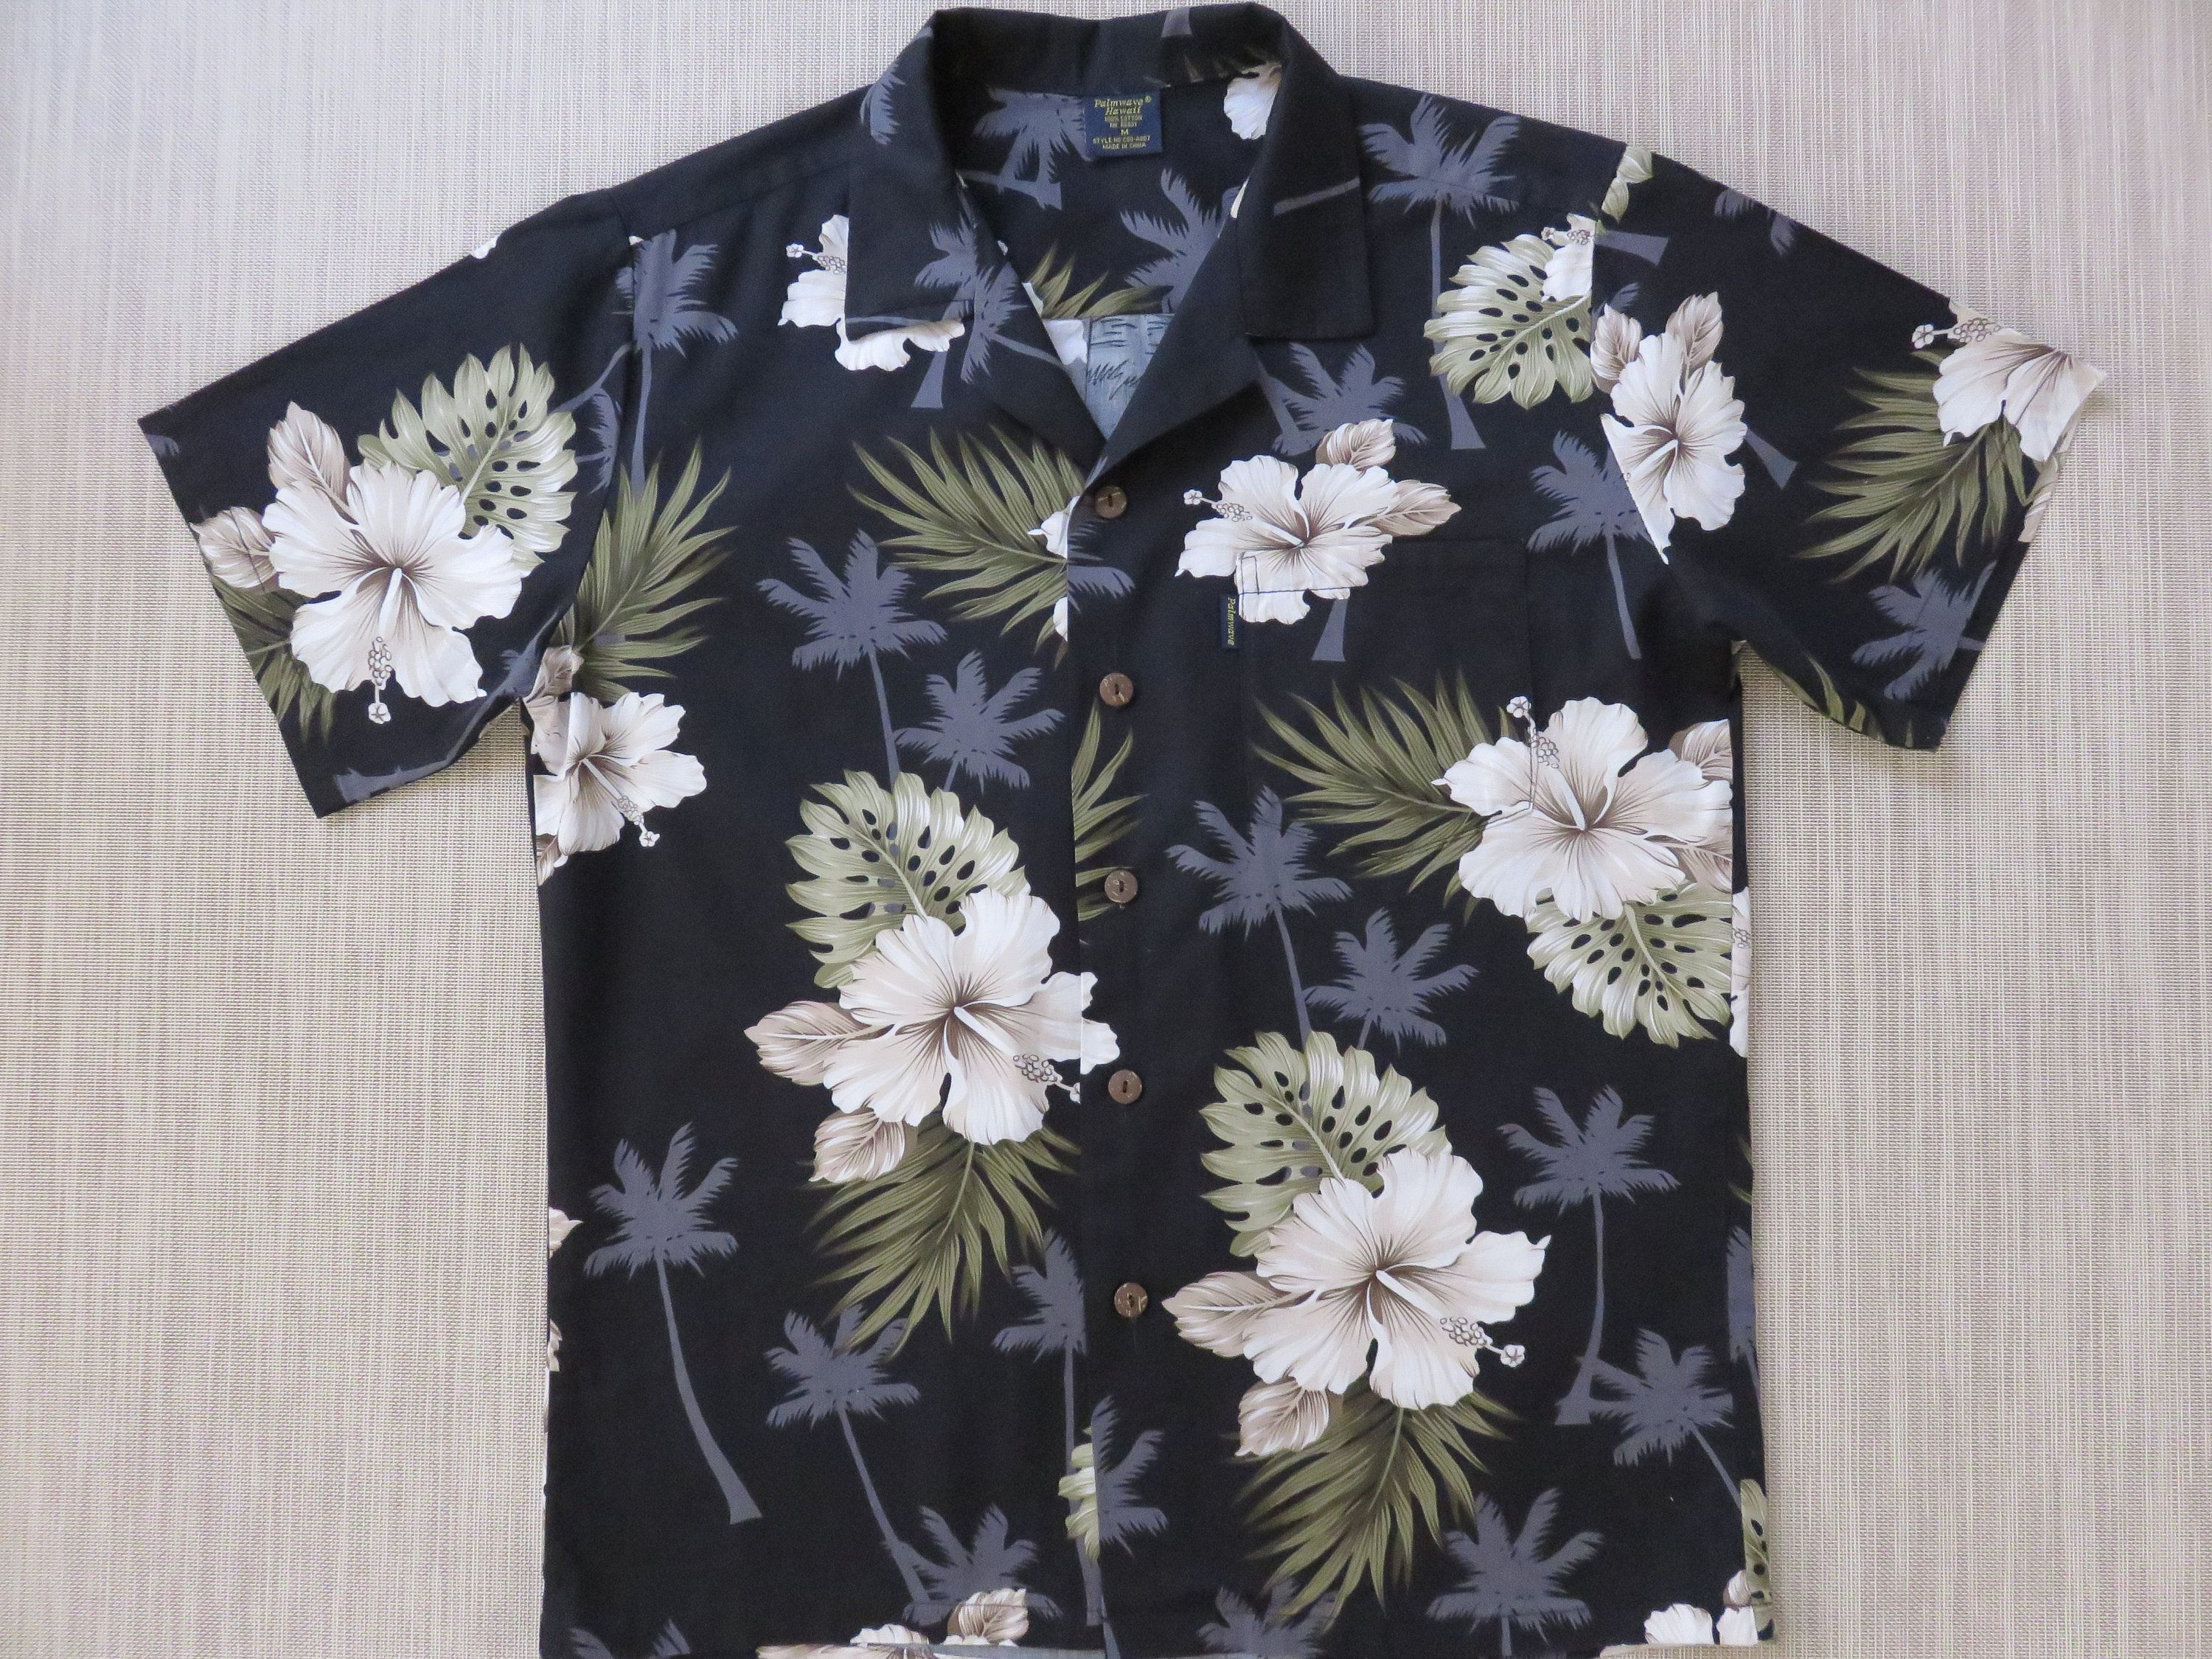 3e1e0bf1e Hawaiian Shirt Men PALMWAVE HAWAII Shirt Black Aloha Shirt Tiki Tropical  Print White Hibiscus 100% Cotton Camp - M - Oahu Lew's Shirt Shack by ...